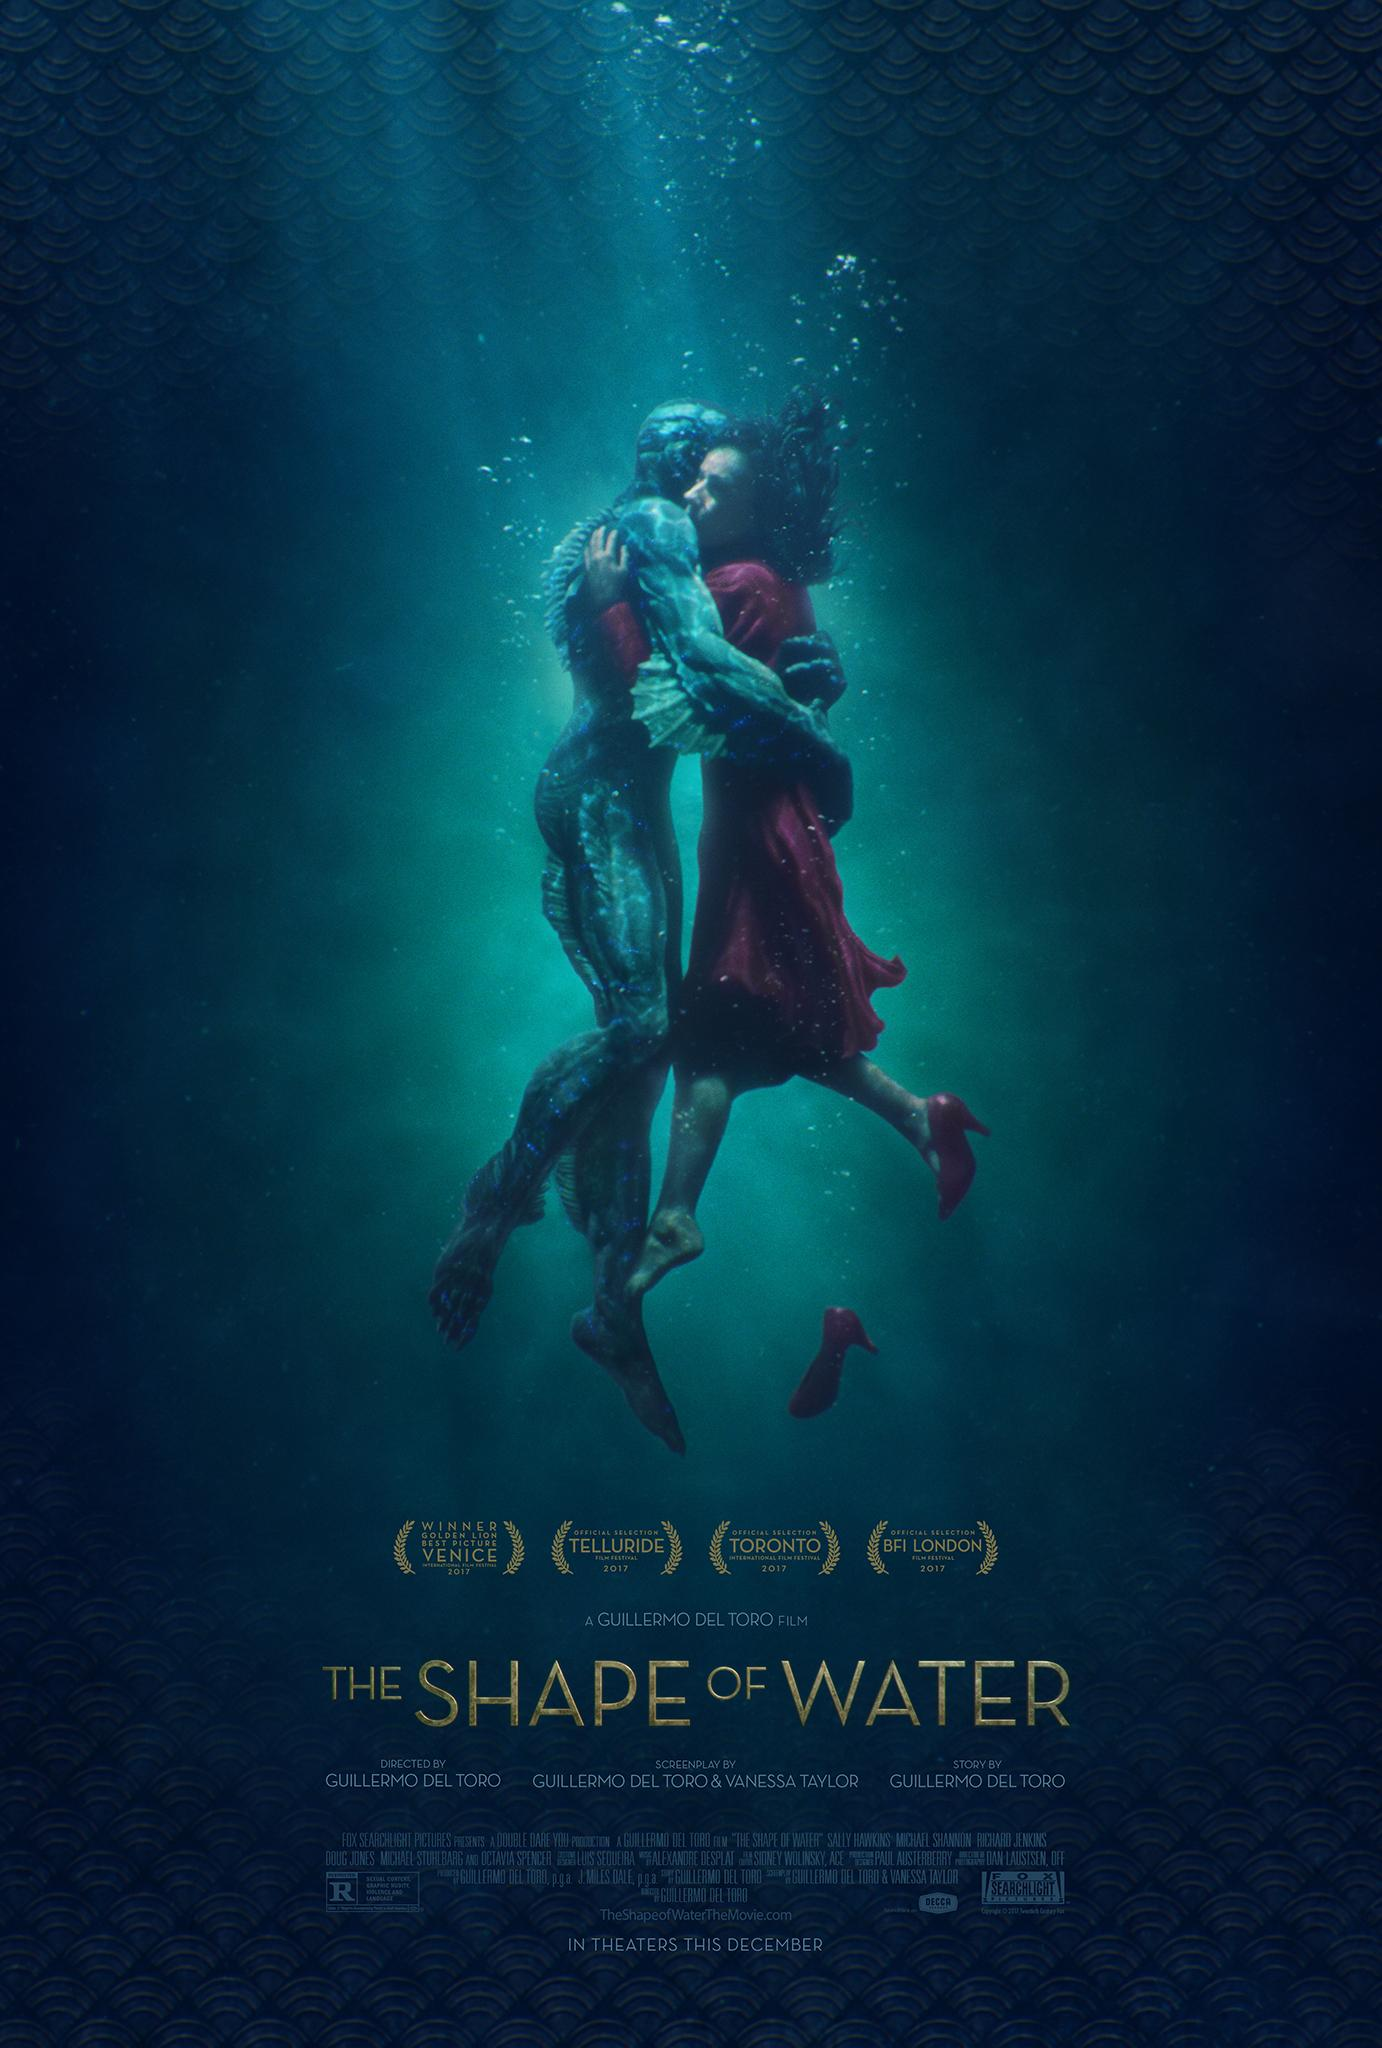 The Shape of Water   (2017) dir. Guillermo del Toro Rated: R image:©2017  Fox Searchlight Pictures